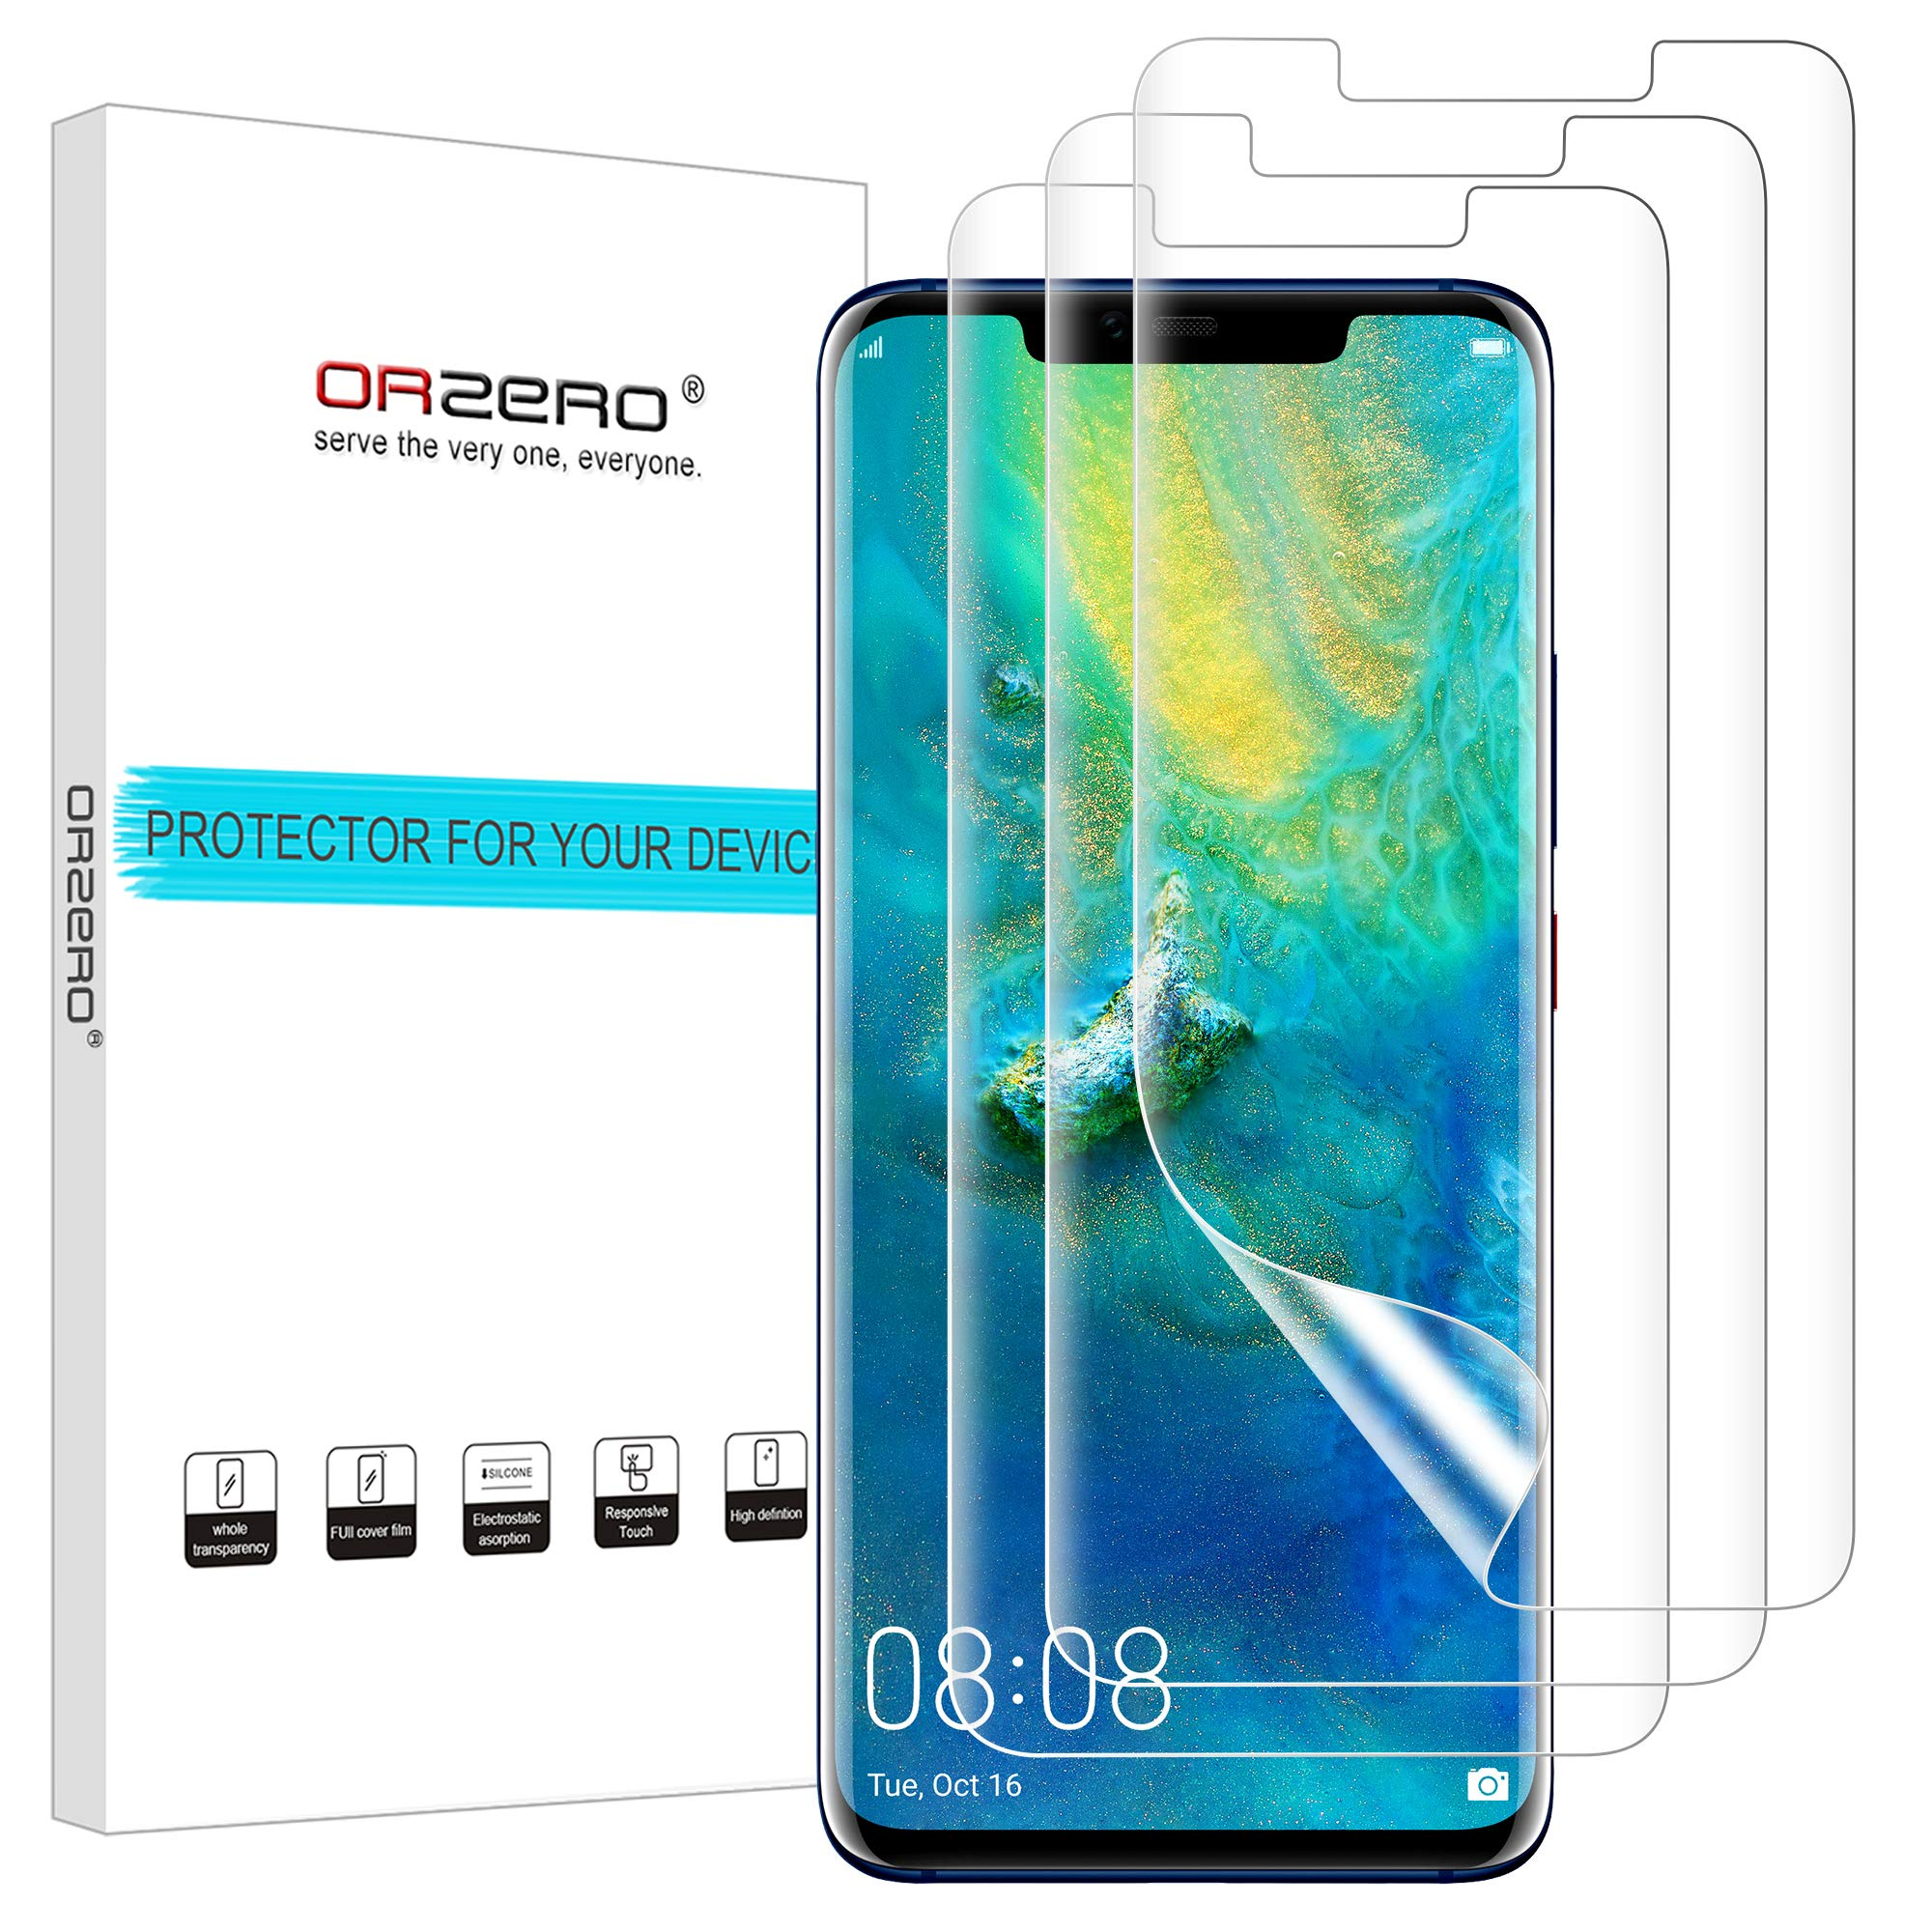 (3 Pack) Orzero Compatible for Huawei Mate 20 Pro HD (Premium Quality) Edge to Edge (Full Coverage) New Screen Protector, High Definition Anti-Scratch Bubble-Free (Lifetime Replacement)